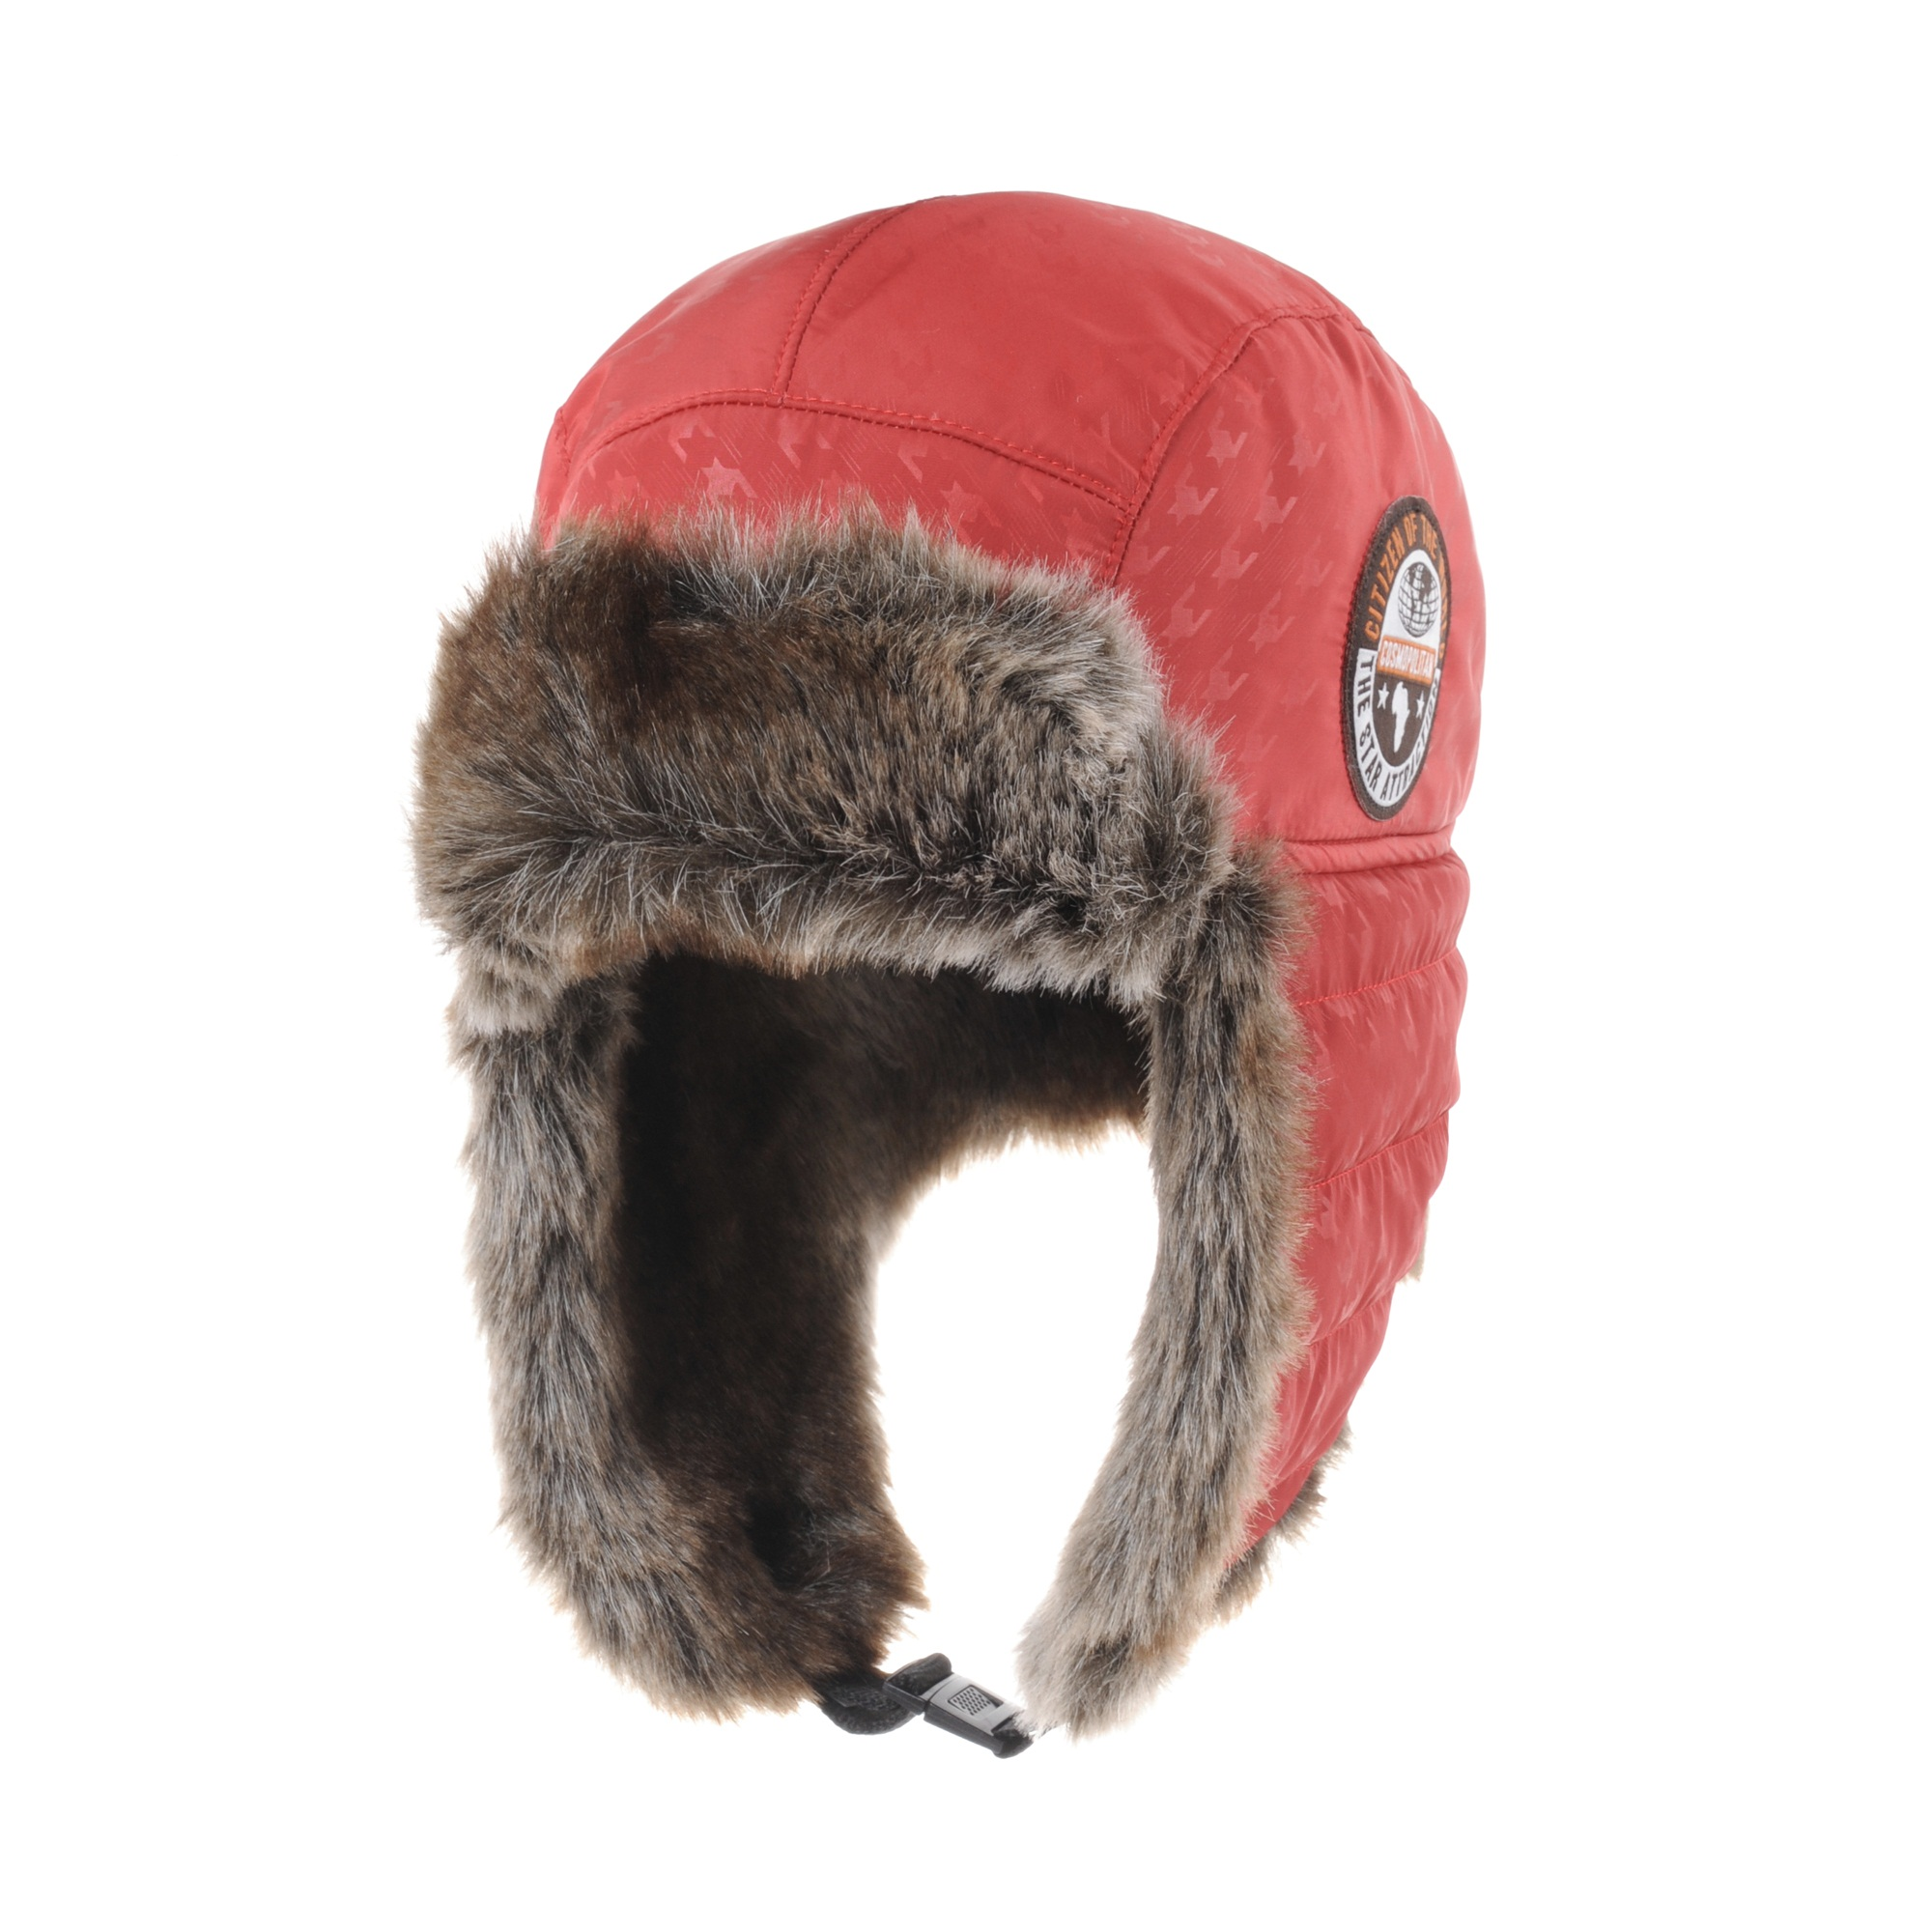 WITHMOONS Houndstooth Trapper Winter Trooper Hat Ear Flap Cap CR7161 (Red)